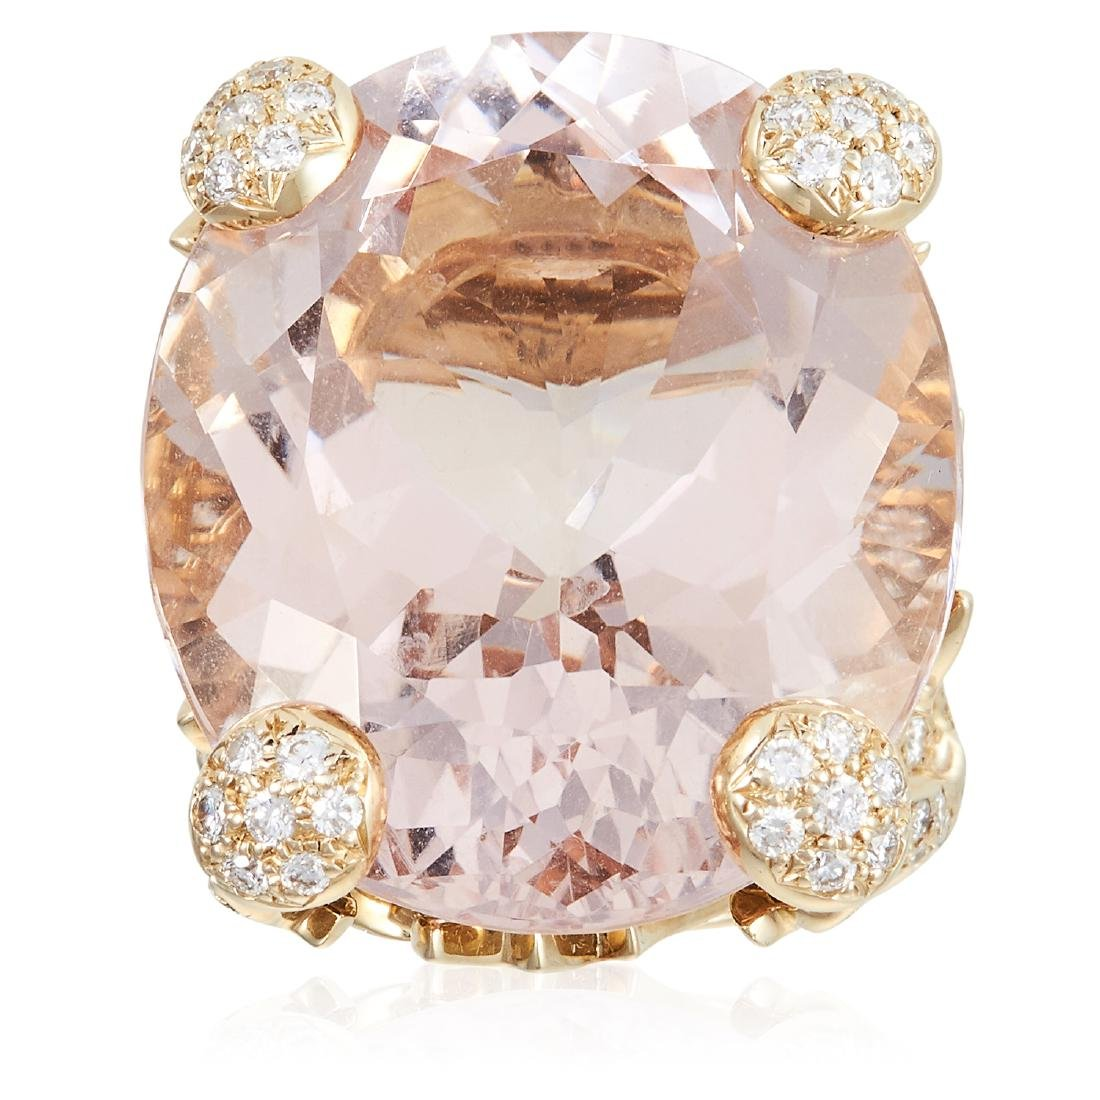 A 55.00 CARAT MORGANITE AND DIAMOND DRESS RING, DIOR in